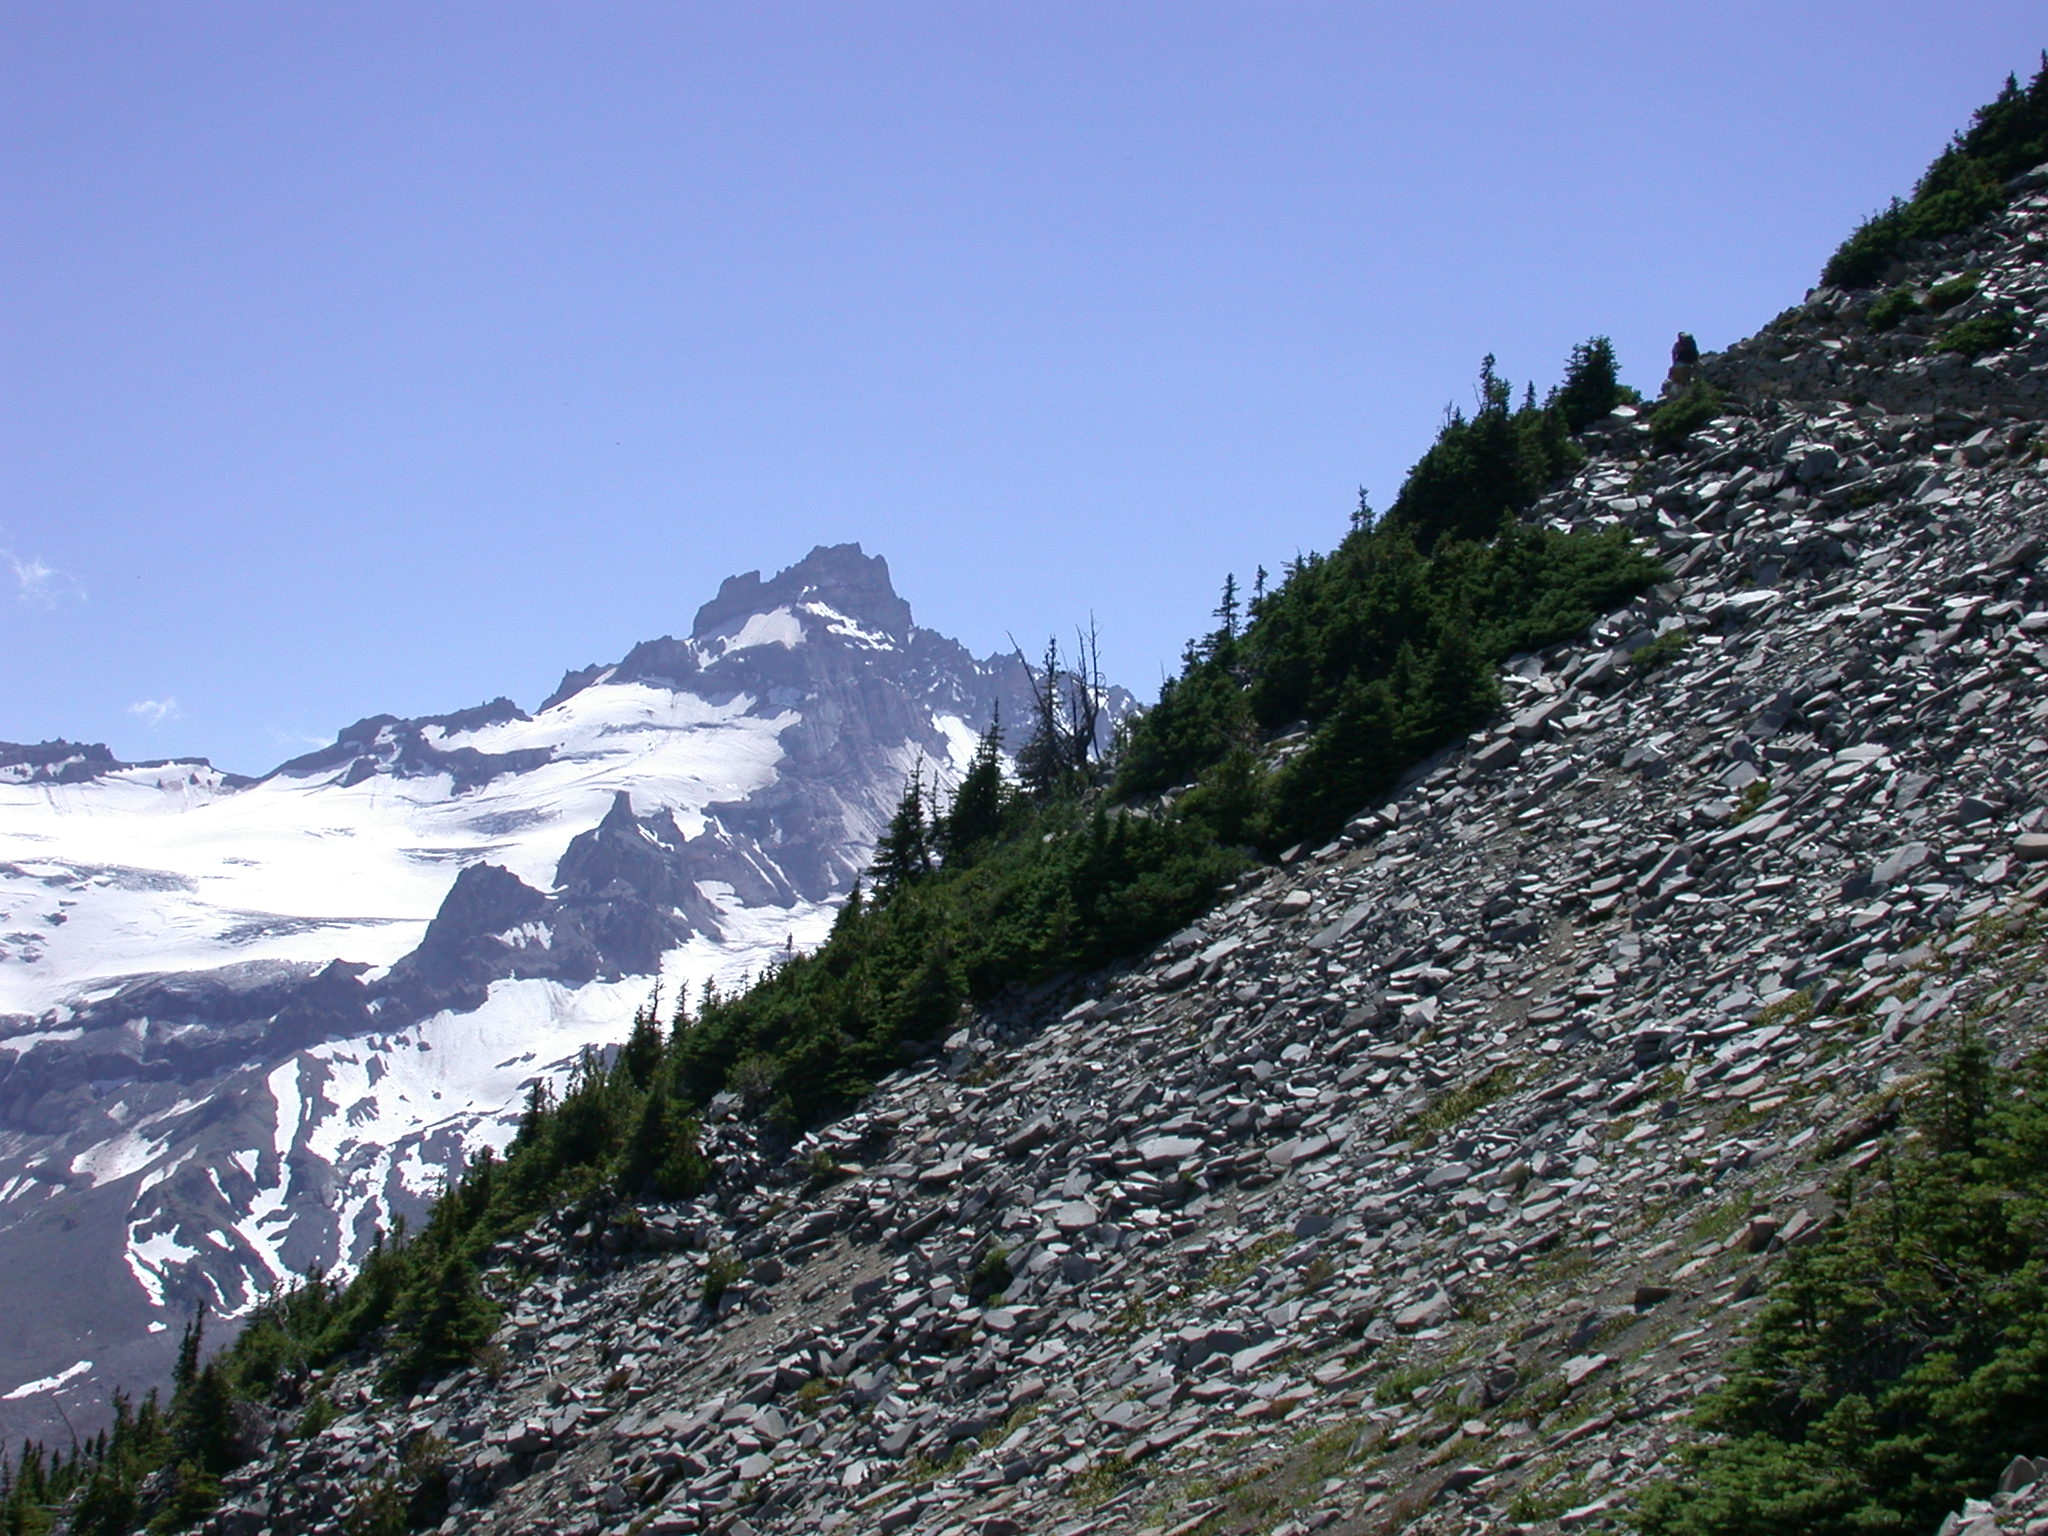 Rock Slide on Lower Trail to Burroughs Peaks on Mount Rainier